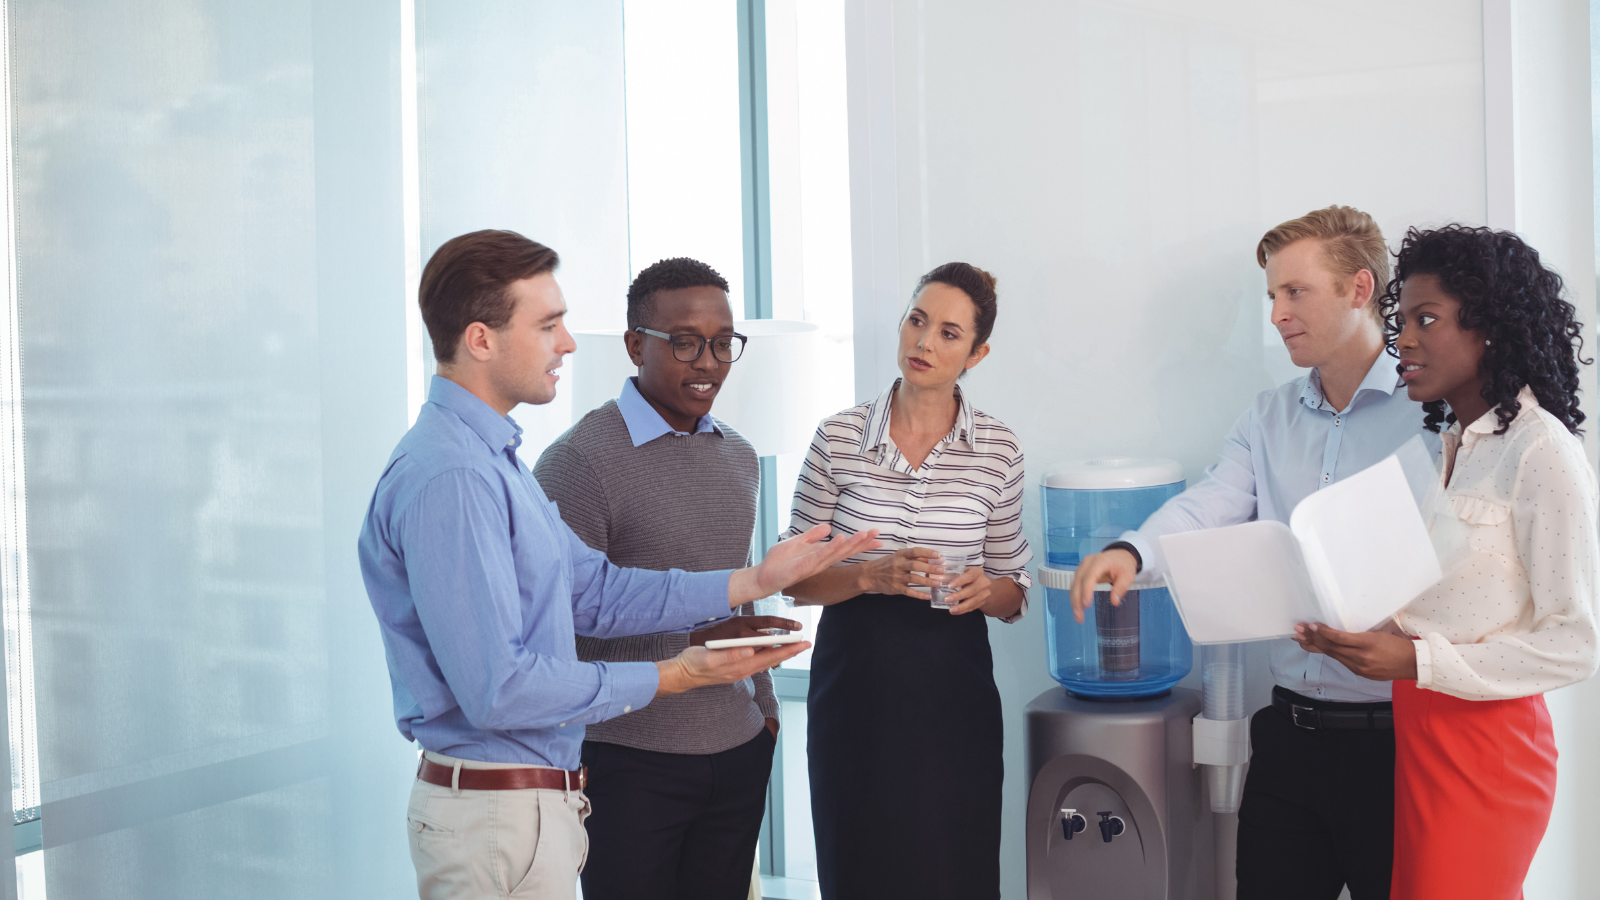 Reinvent the Office Watercooler, Whats Shaking Up Sales